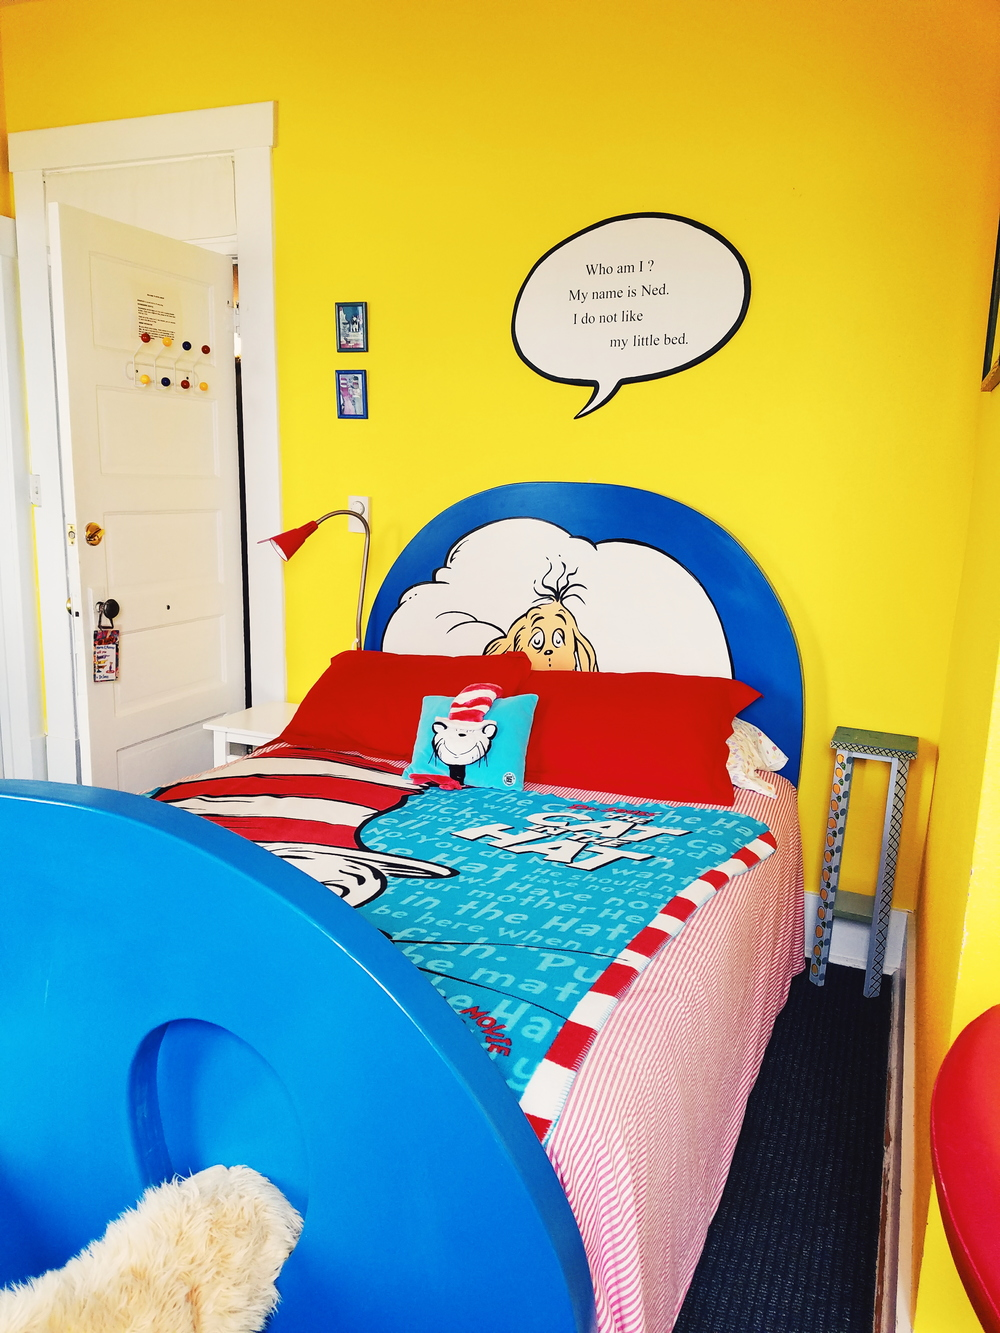 Dr Suess room - of course! The bed has furry feet!